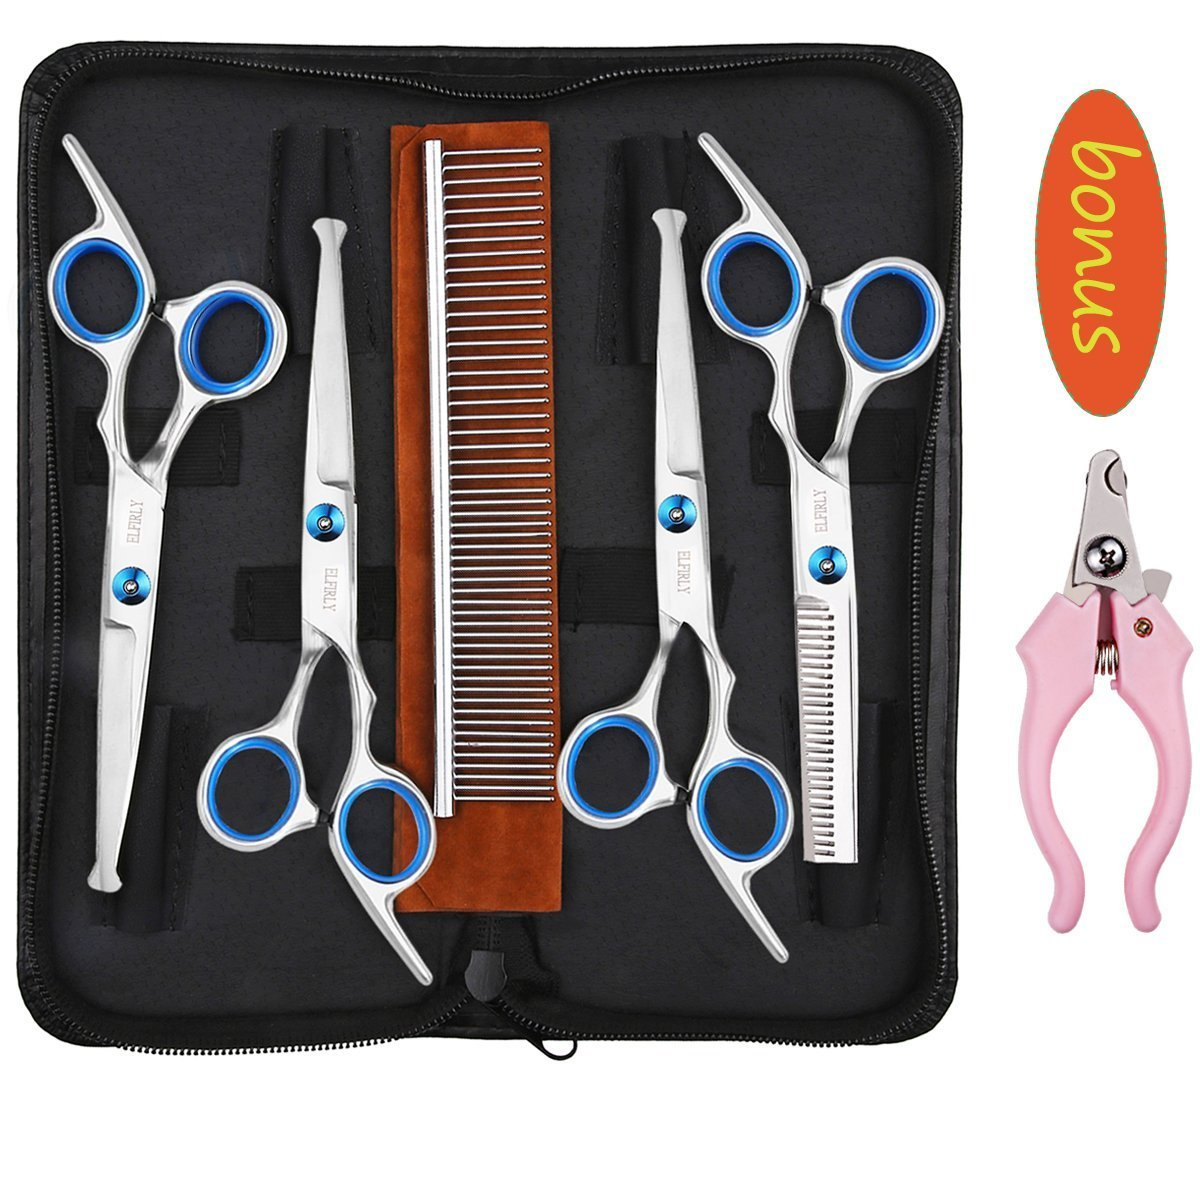 Professional Dog Grooming Scissors Kit Stainless Steel Round Tip Cutting Thinning Curved Shears Grooming Comb Pet Hair Fur Scissors Set with Extra Dog Nail Clippers for Dogs and Cats